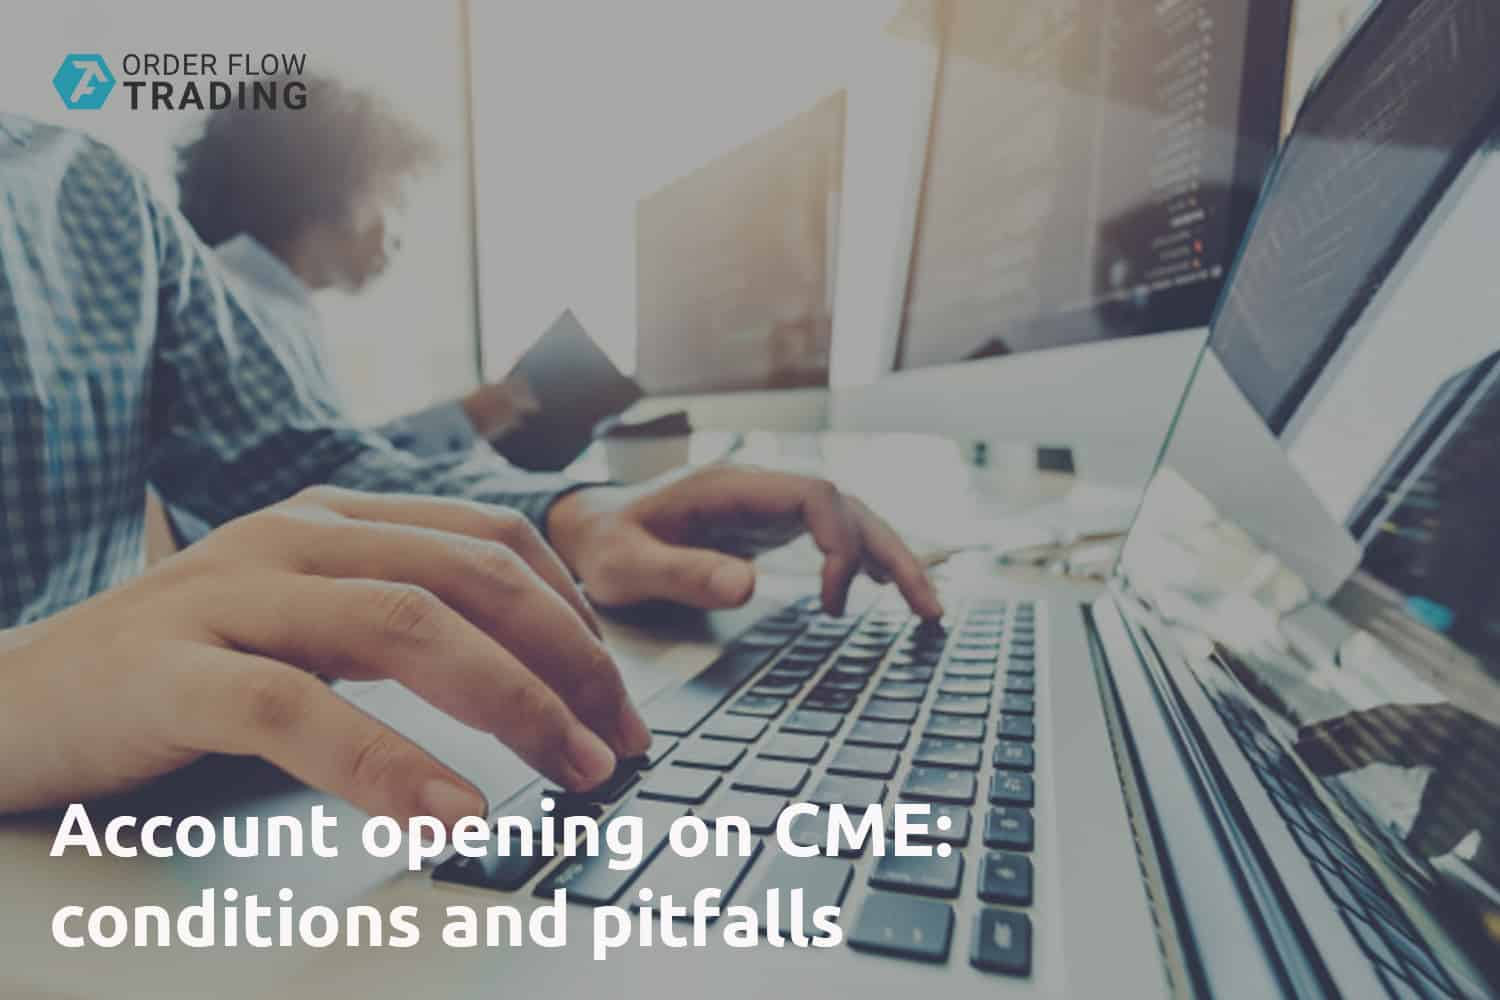 Account opening on CME: conditions and pitfalls